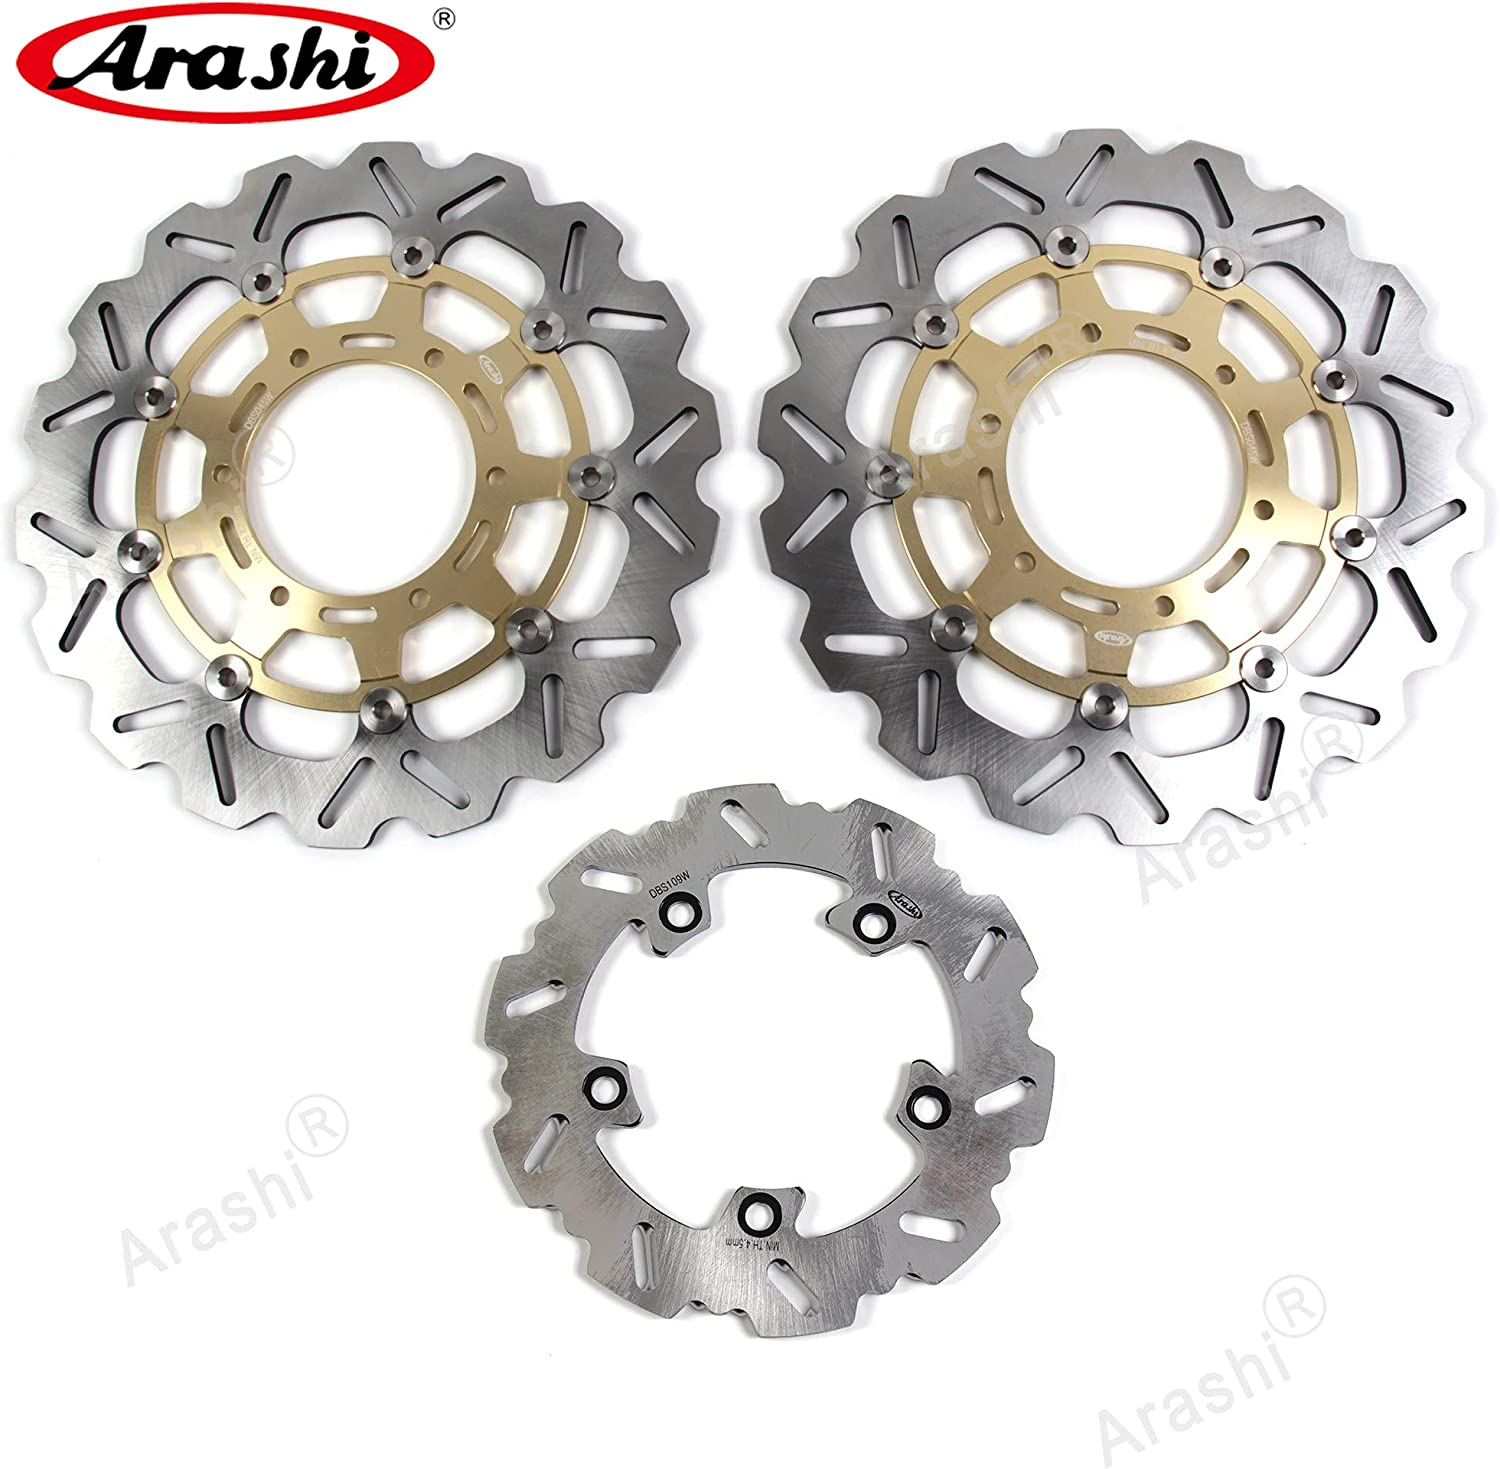 Arashi Front Rear Brake Al sold out. Disc Rotors SUZUKI for Mo GSXR 1000 Now on sale 2016